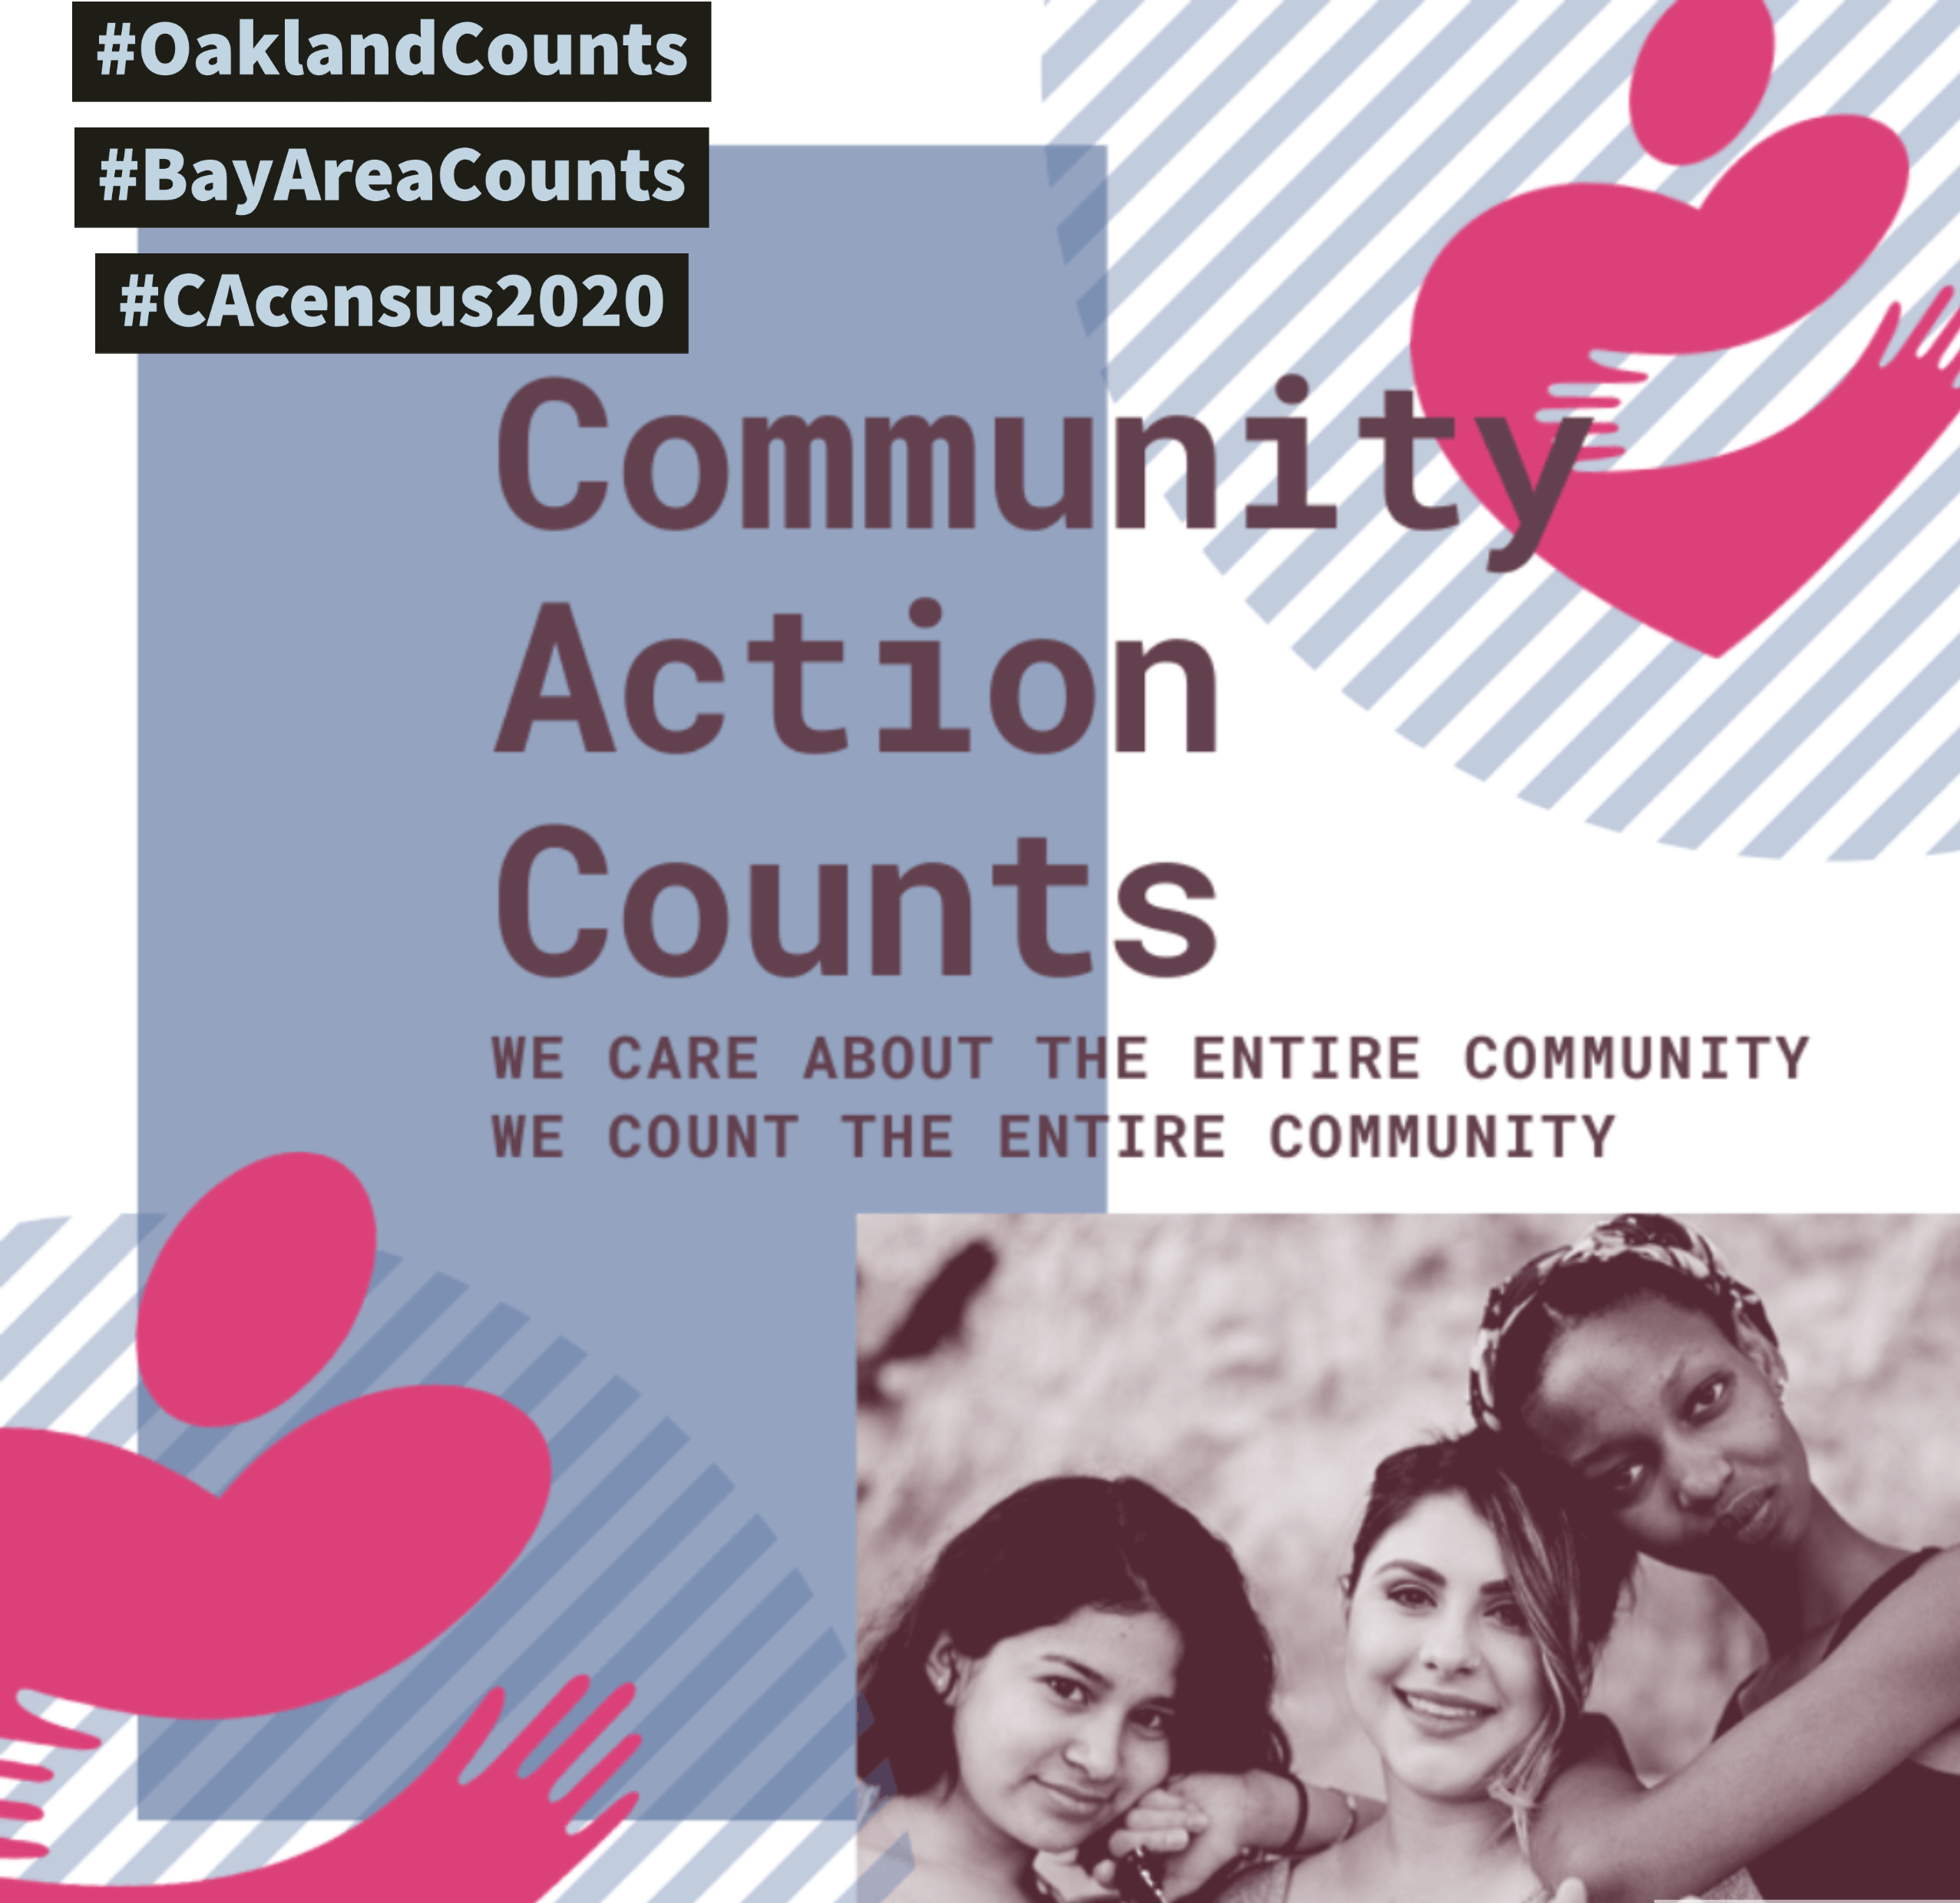 Community Action Counts. We Care.